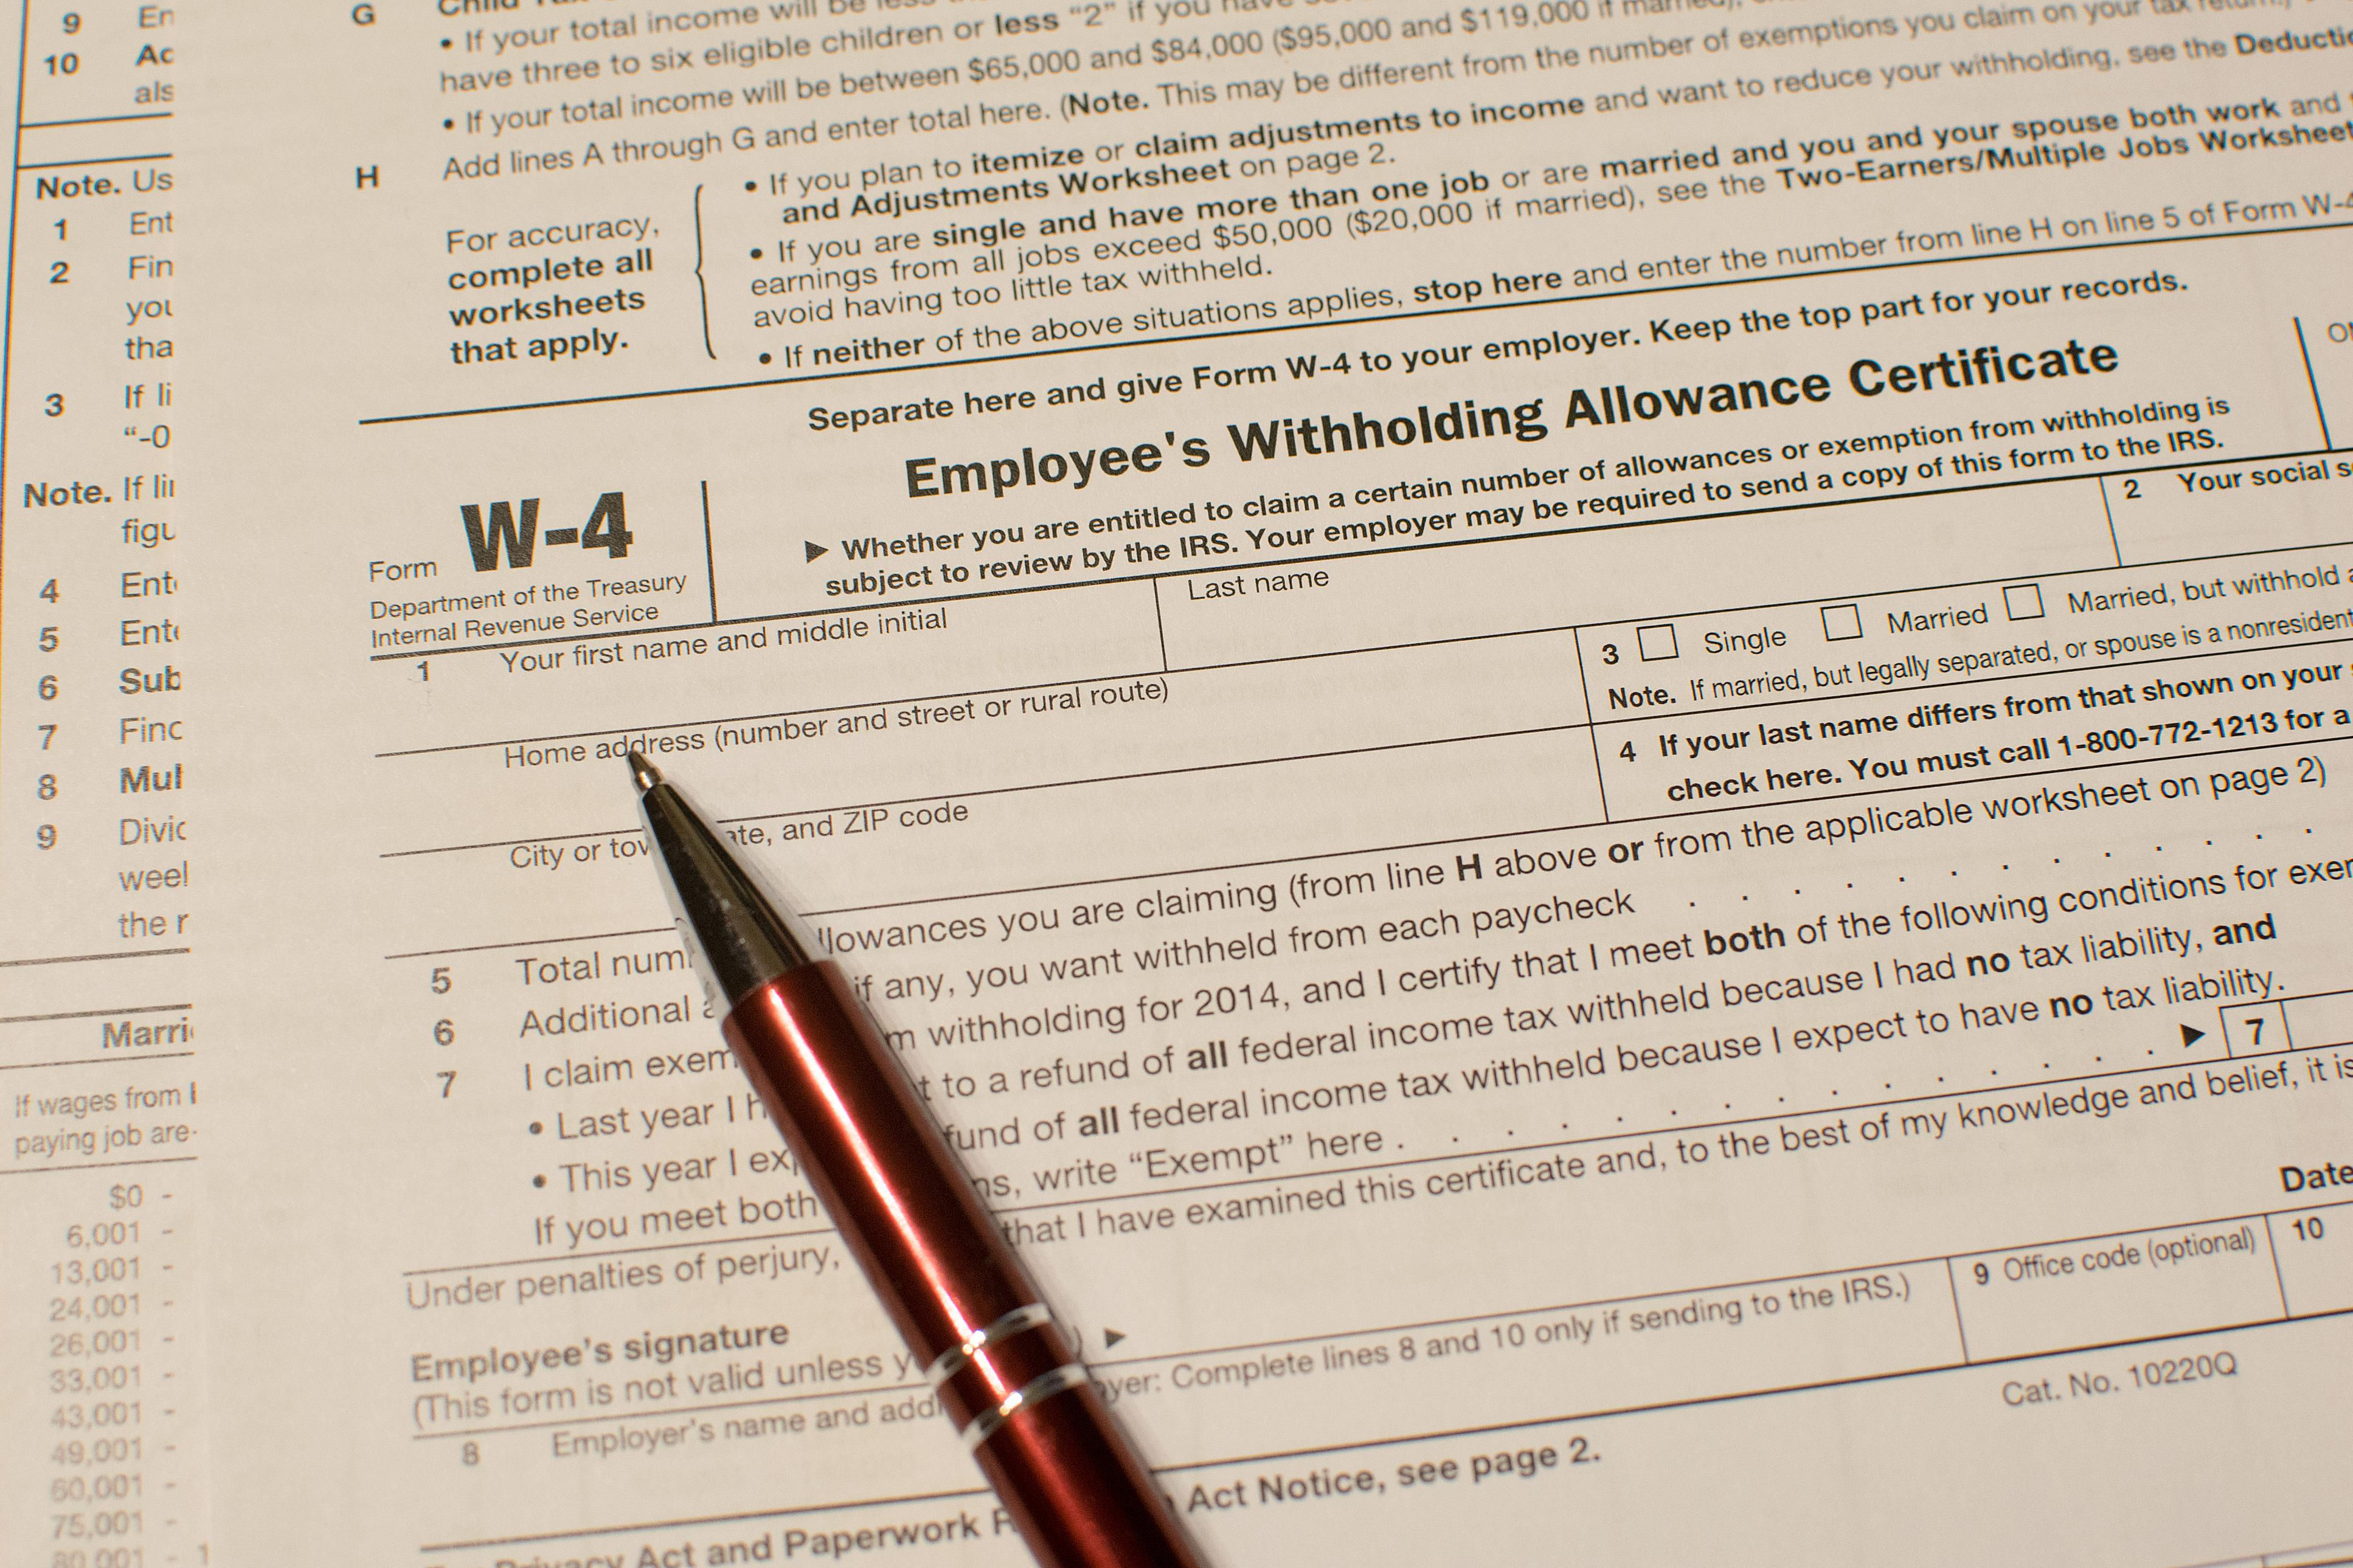 New hire forms and checklist form w 4 information for employers xflitez Gallery